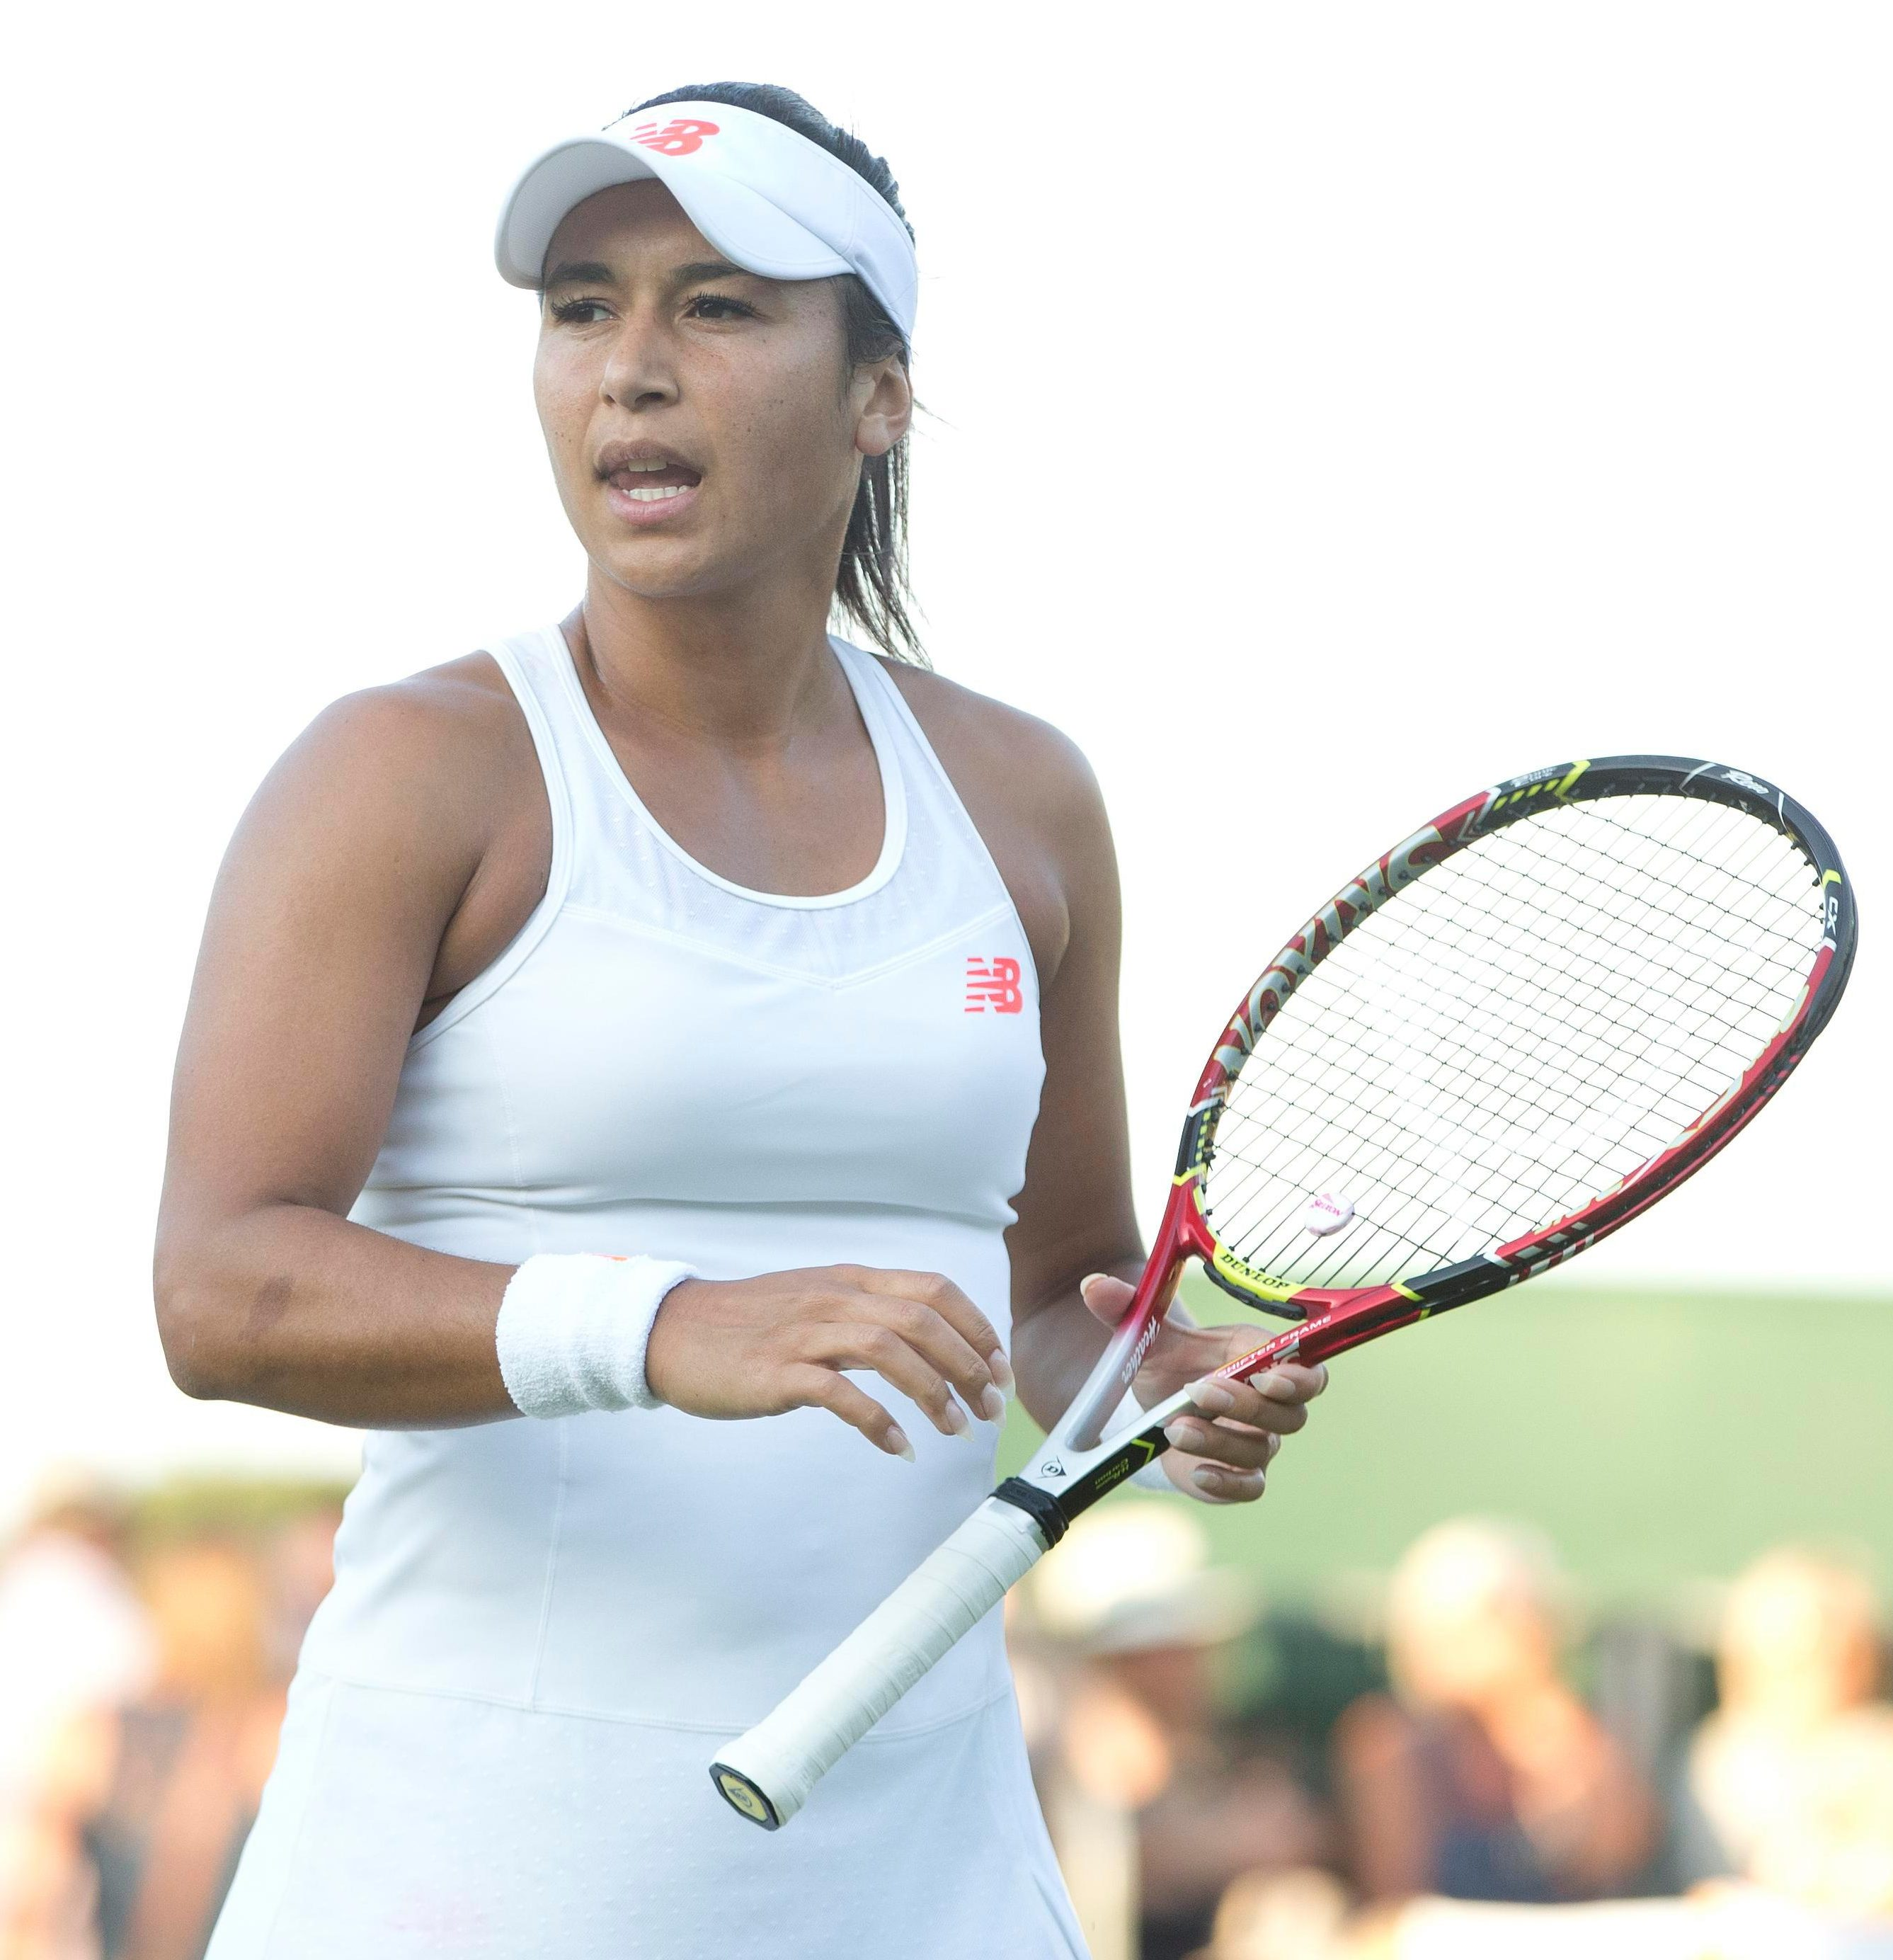 Heather Watson branded the linesman a 'pathetic snitch' for getting her point docked